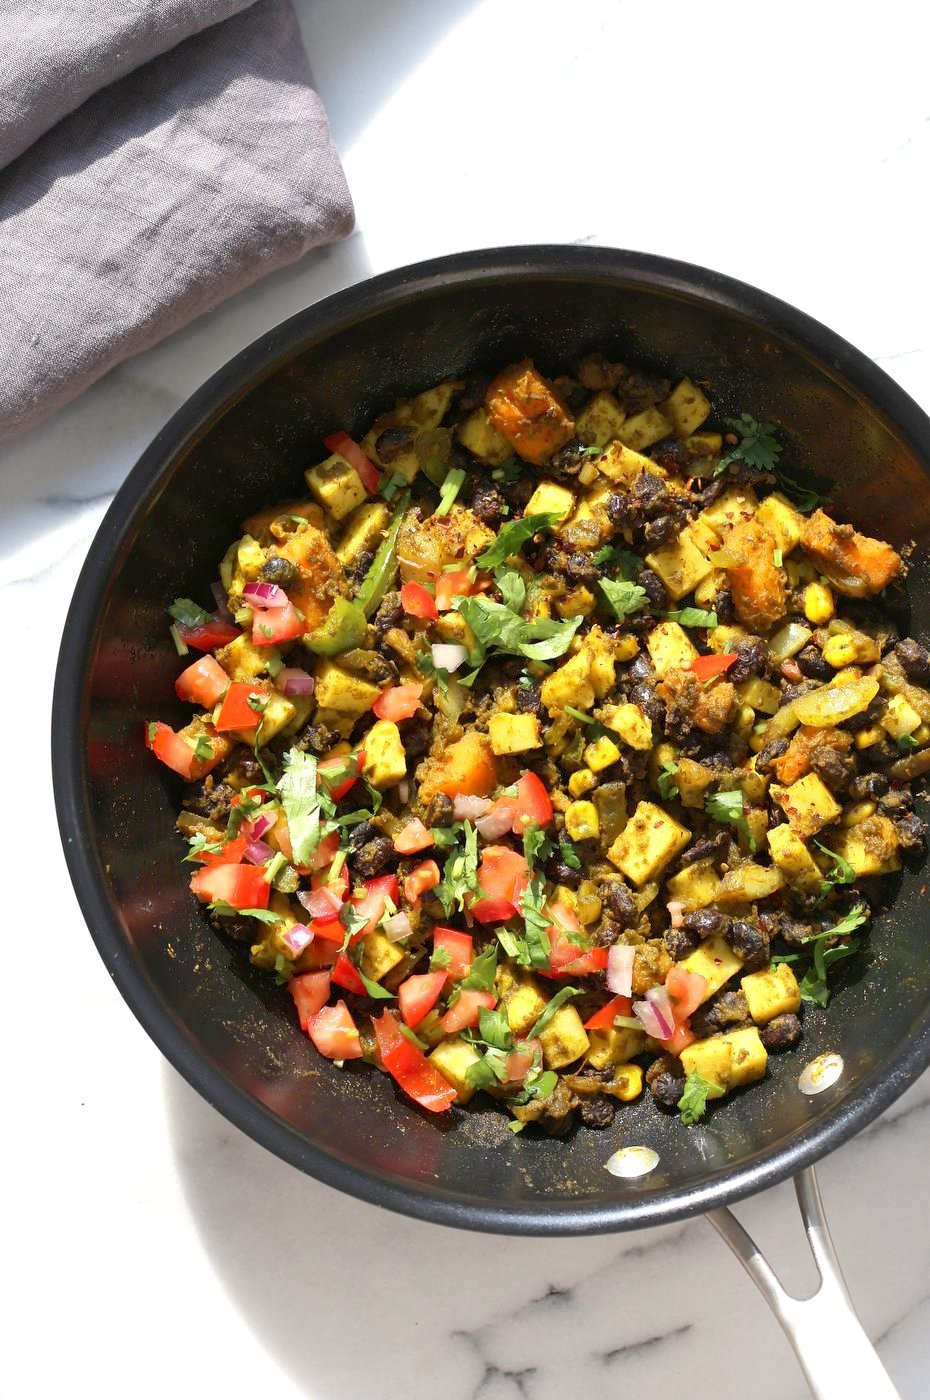 Southwestern Tofu Scramble with Chickpea Tofu. Scrambled Tofu without Soy tofu! Soy-free Breakfast Scramble with Black beans, Veggies, Sweet Potatoes, Spices, Chickpea flour Tofu. Double Protein Savory Vegan Breakfast. Gluten-free Soy-free Nut-free  | VeganRicha.com